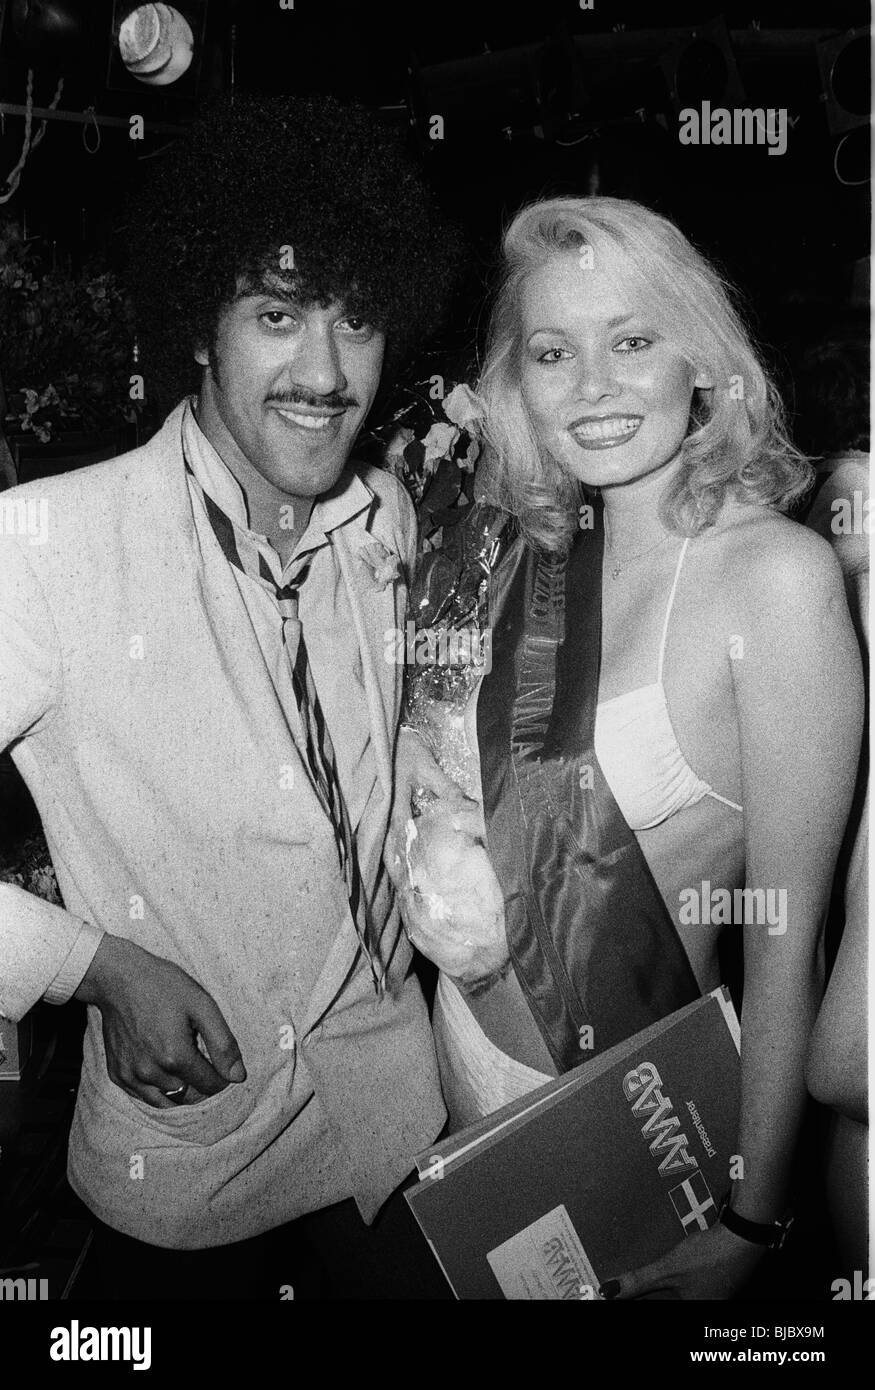 Phil Lynott as a jury member with the winner of a beauty-contest in a Copenhagen night club - Stock Image